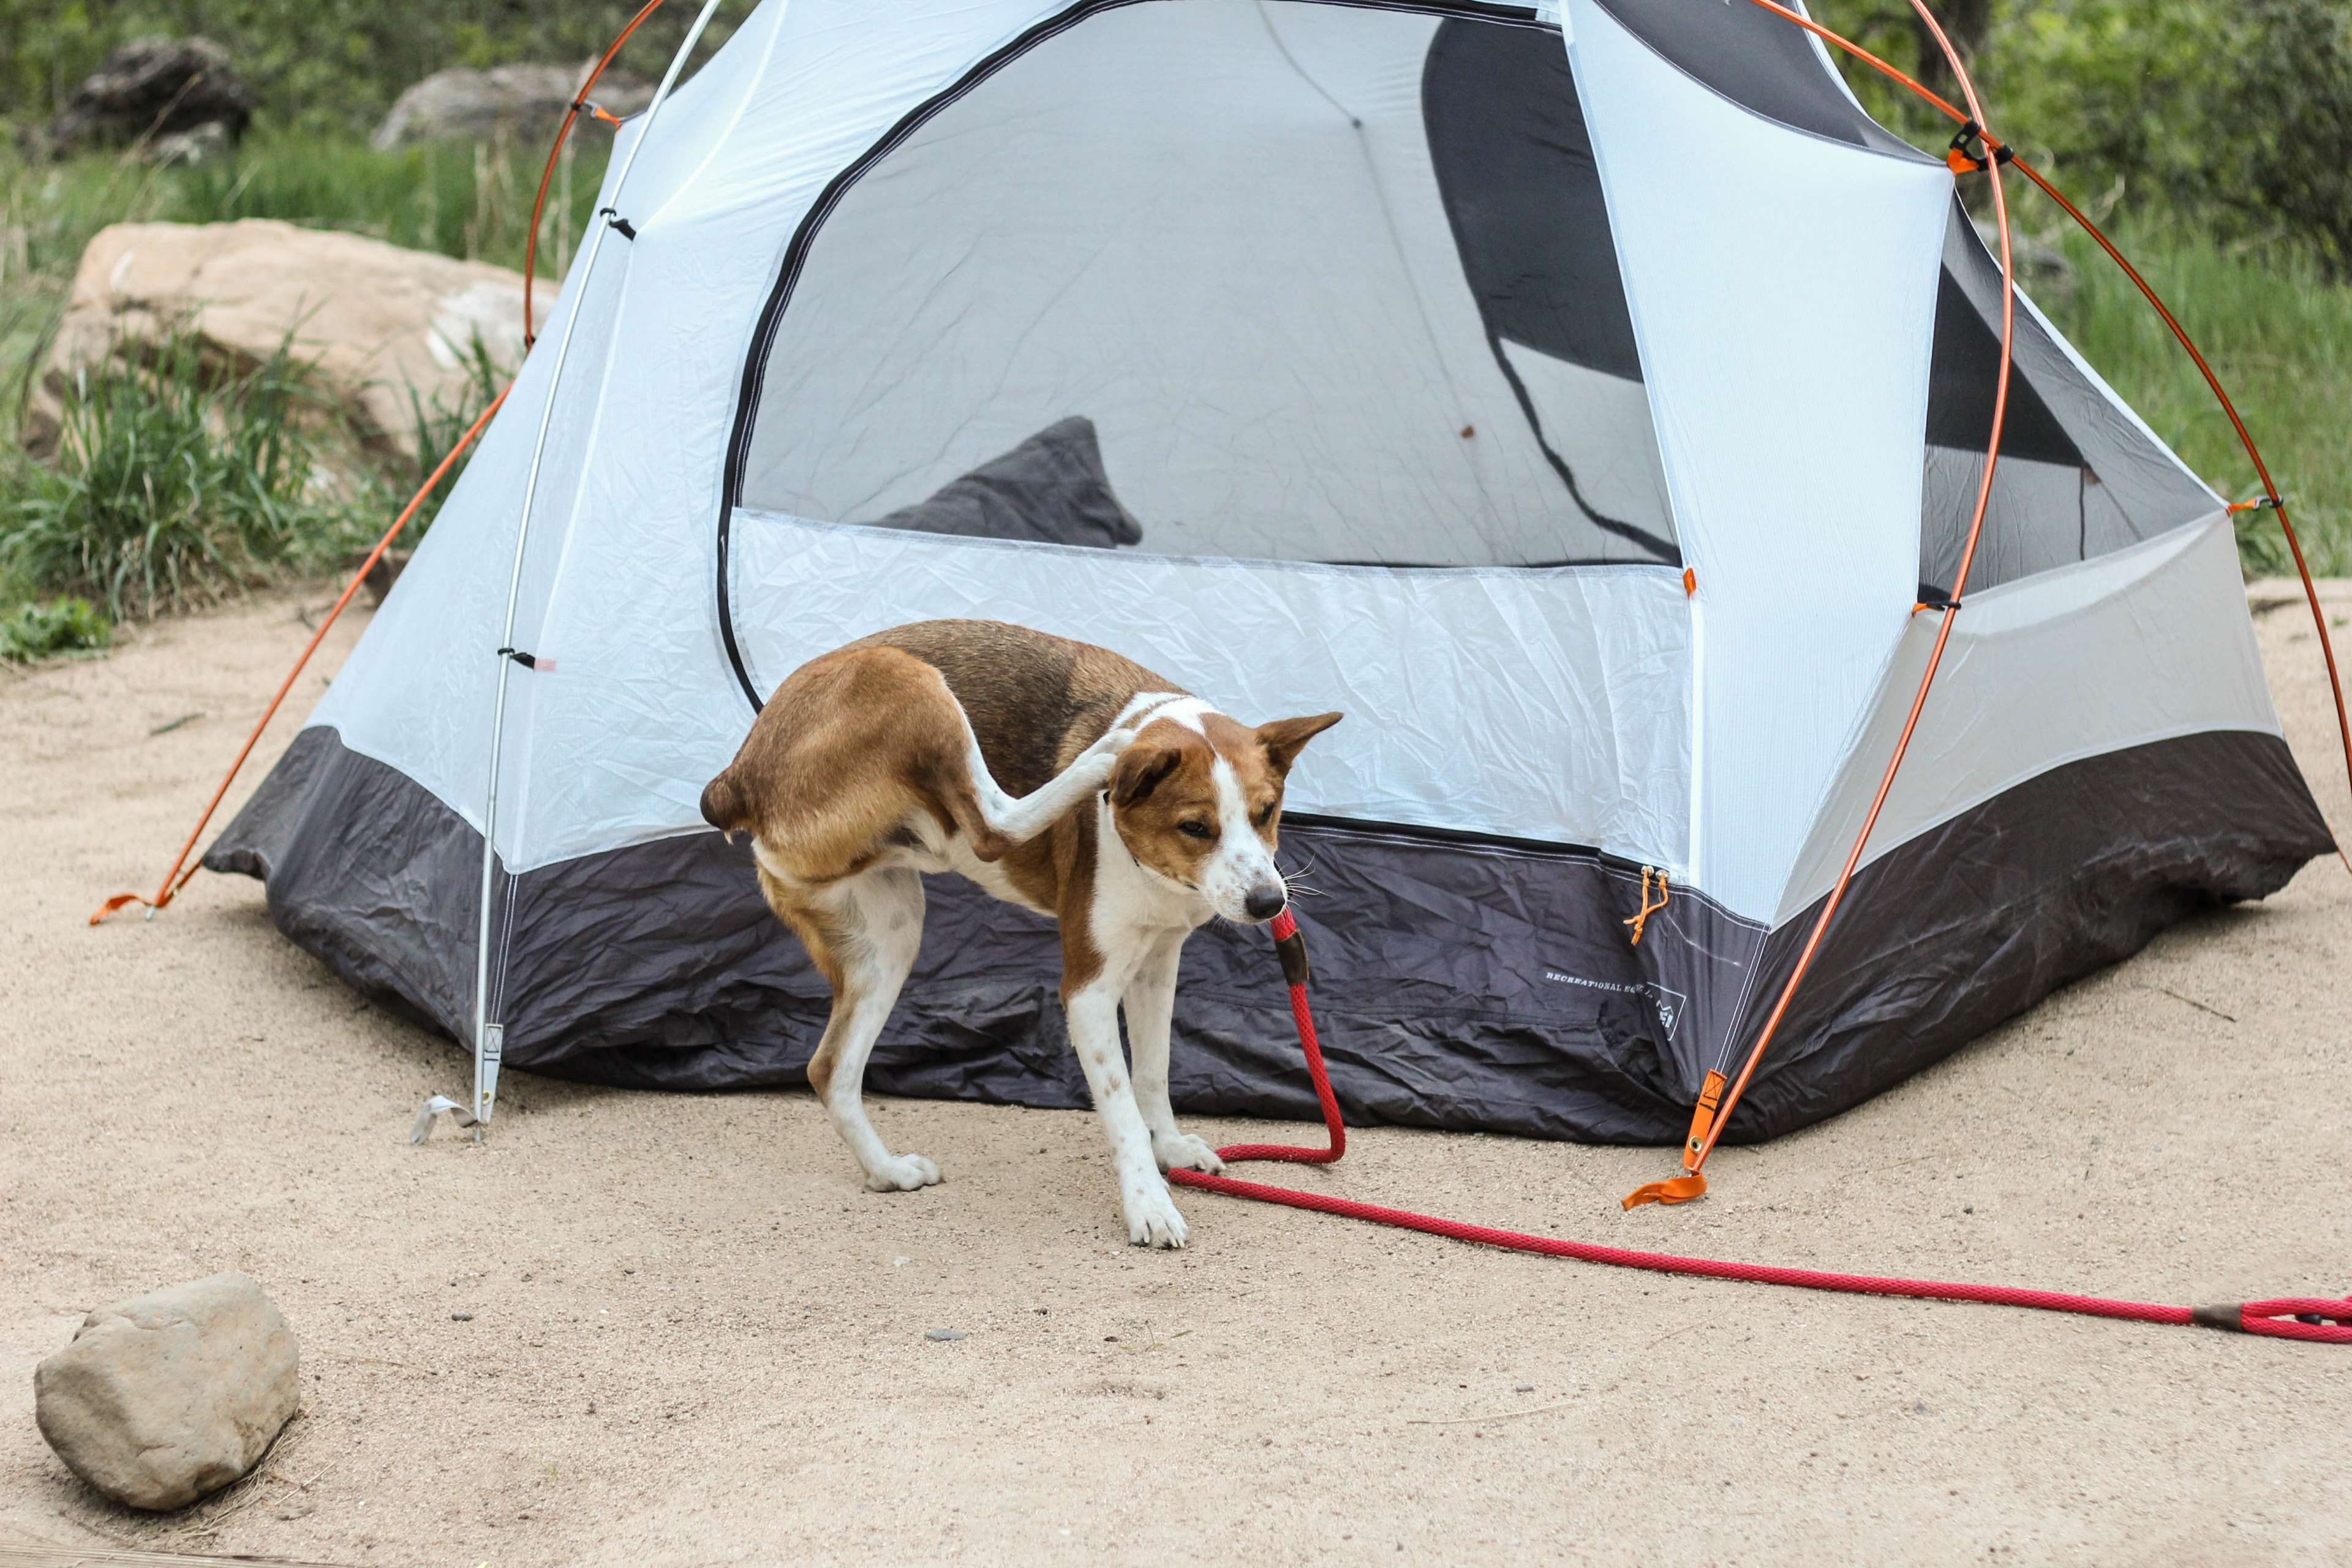 basenji #camping #cattle dog #cute #dog #tent   wallpapers and